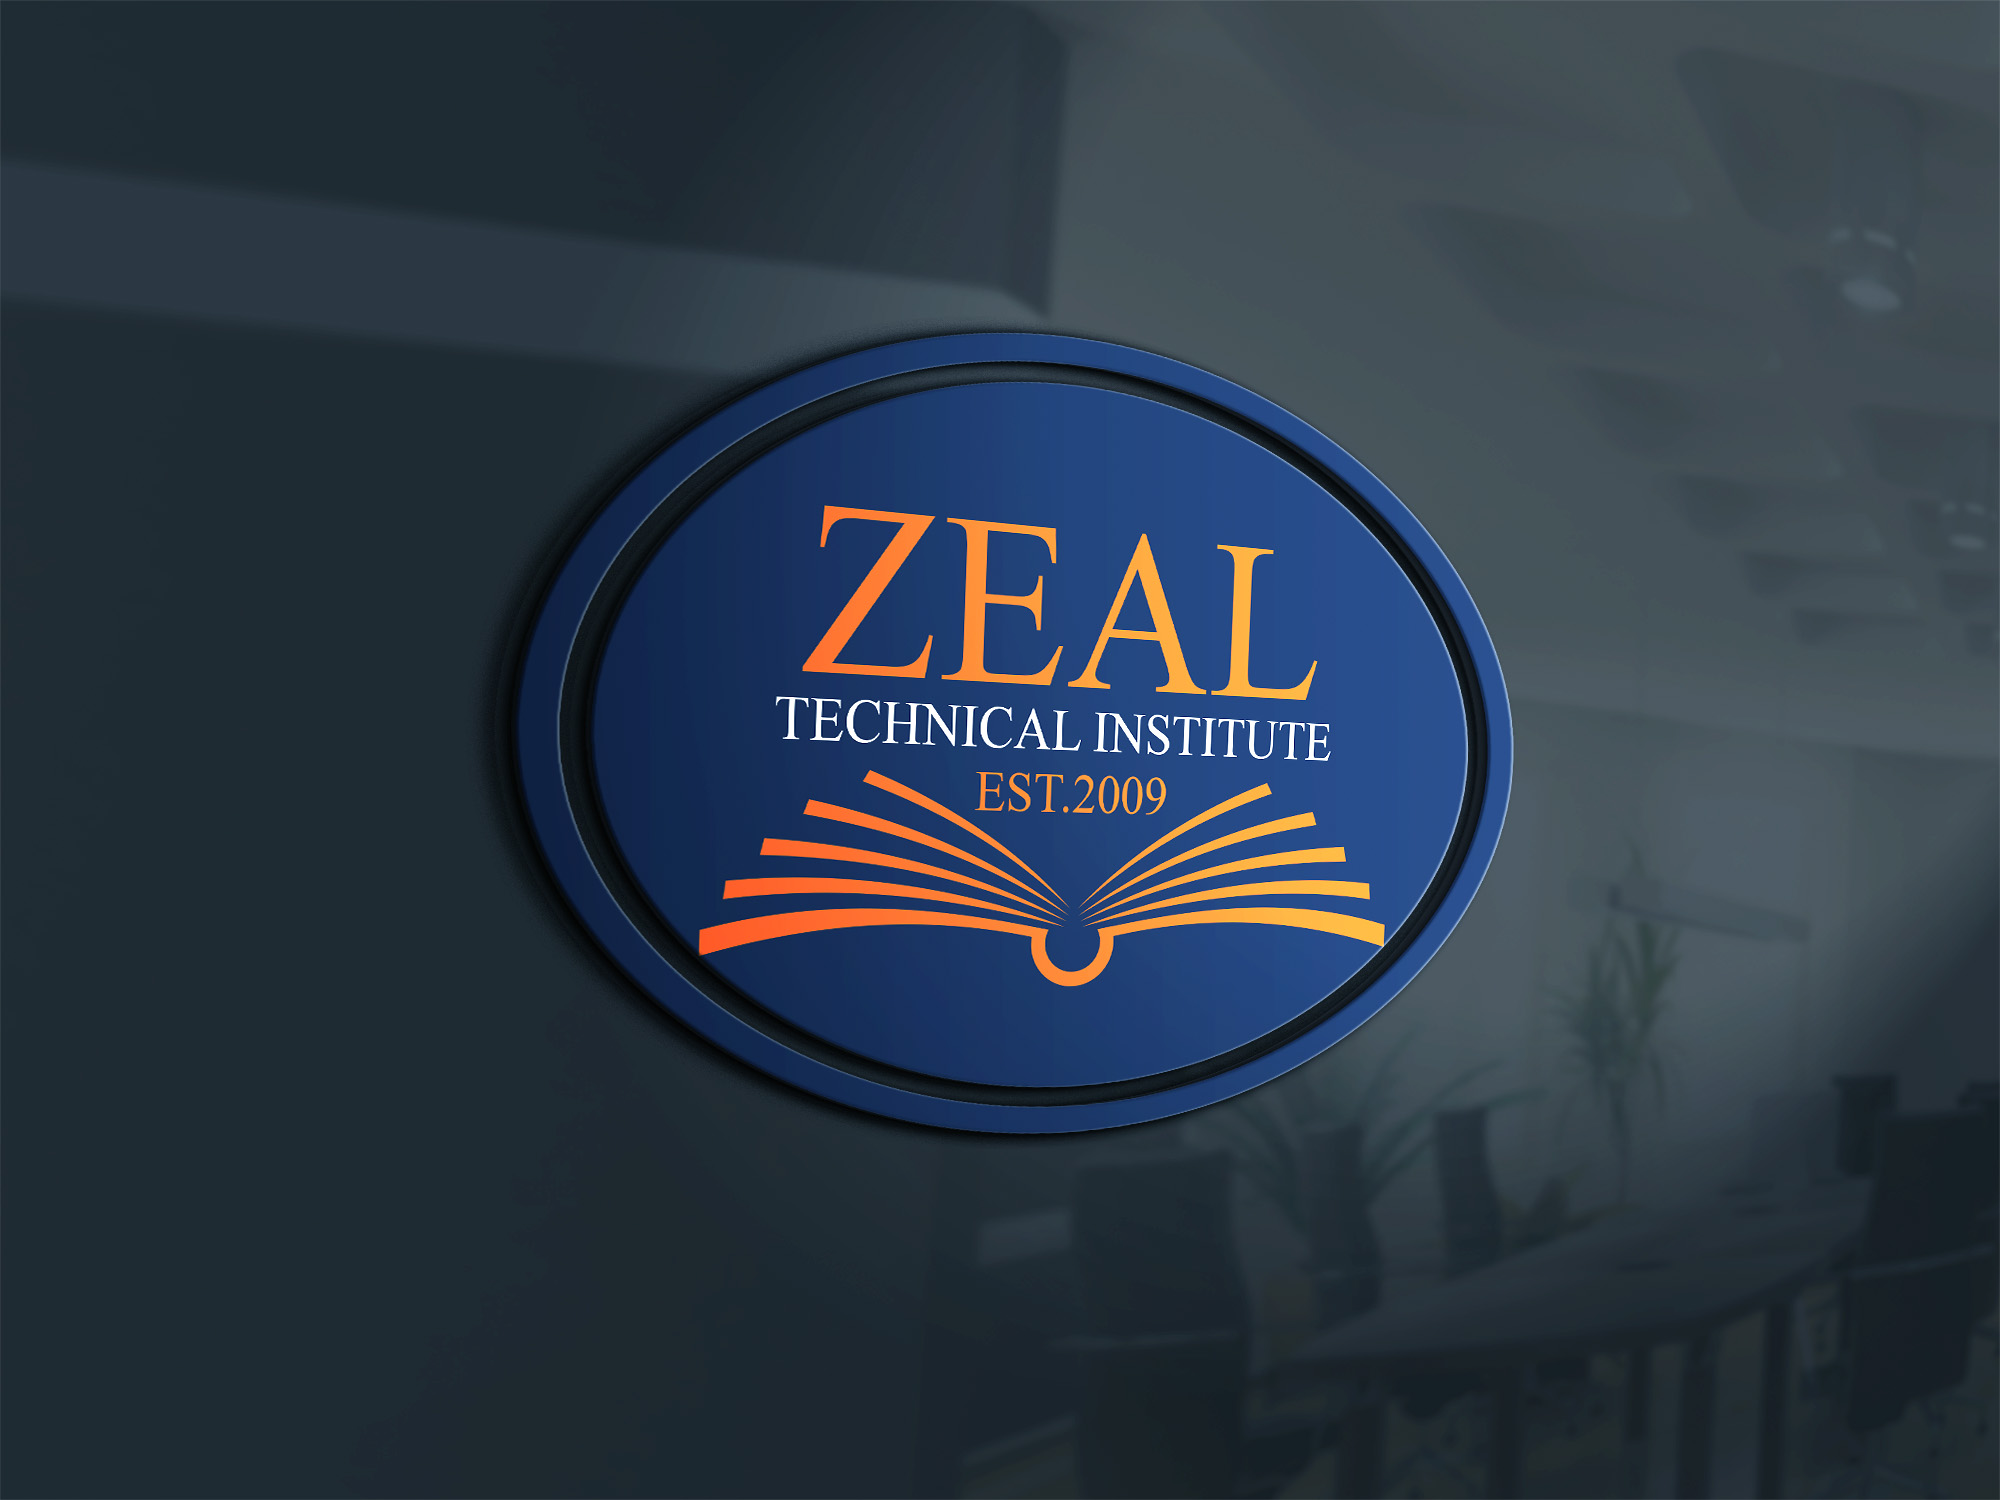 Zeal Technical Institute Offers Affordable and Fast Specialized Courses to Students Wishing to Secure Healthcare Careers Under a Year in Florida